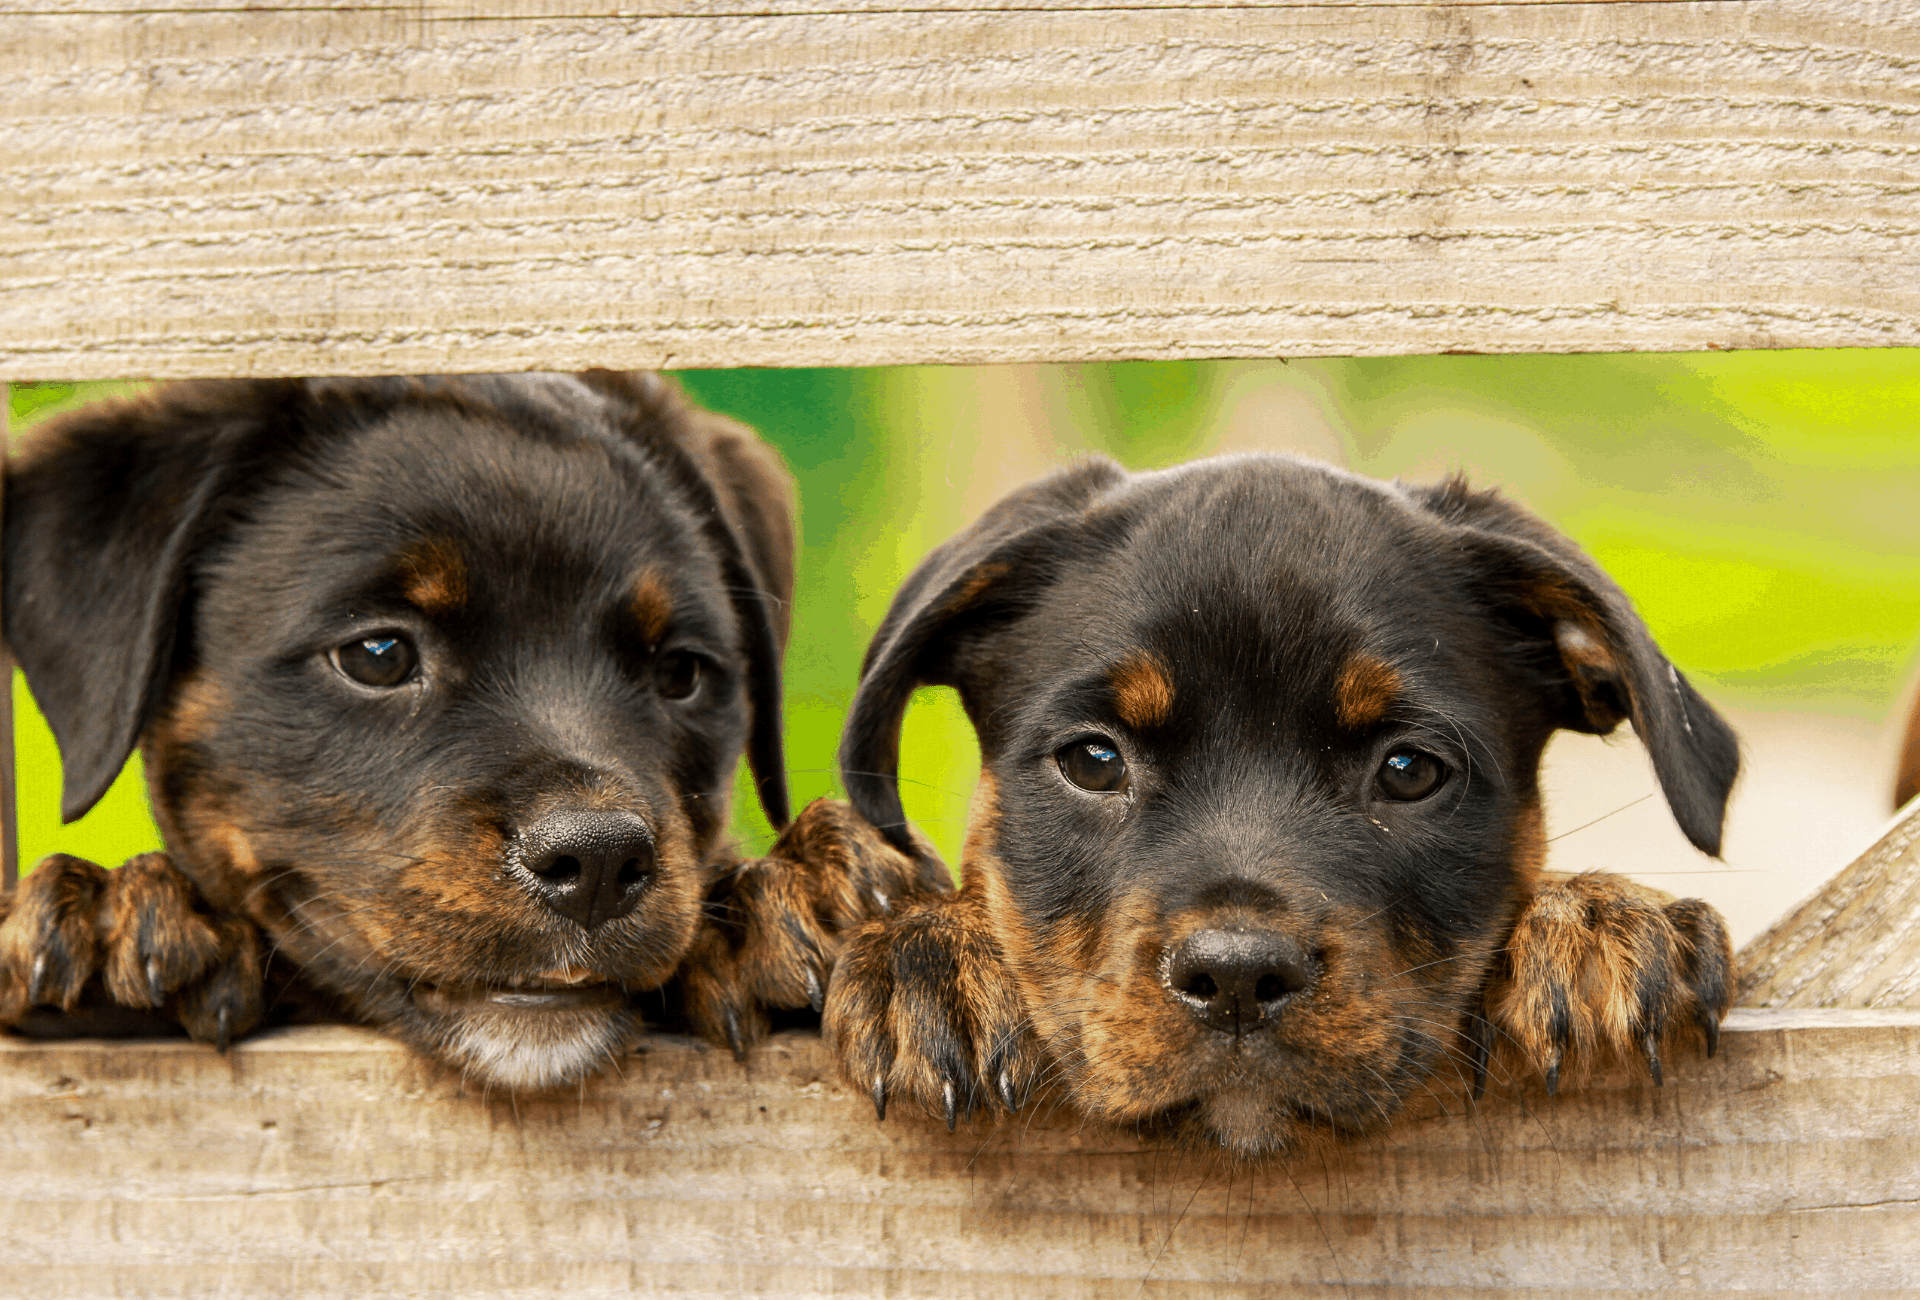 Rottweiler puppies that have black specs on their paws and nose.